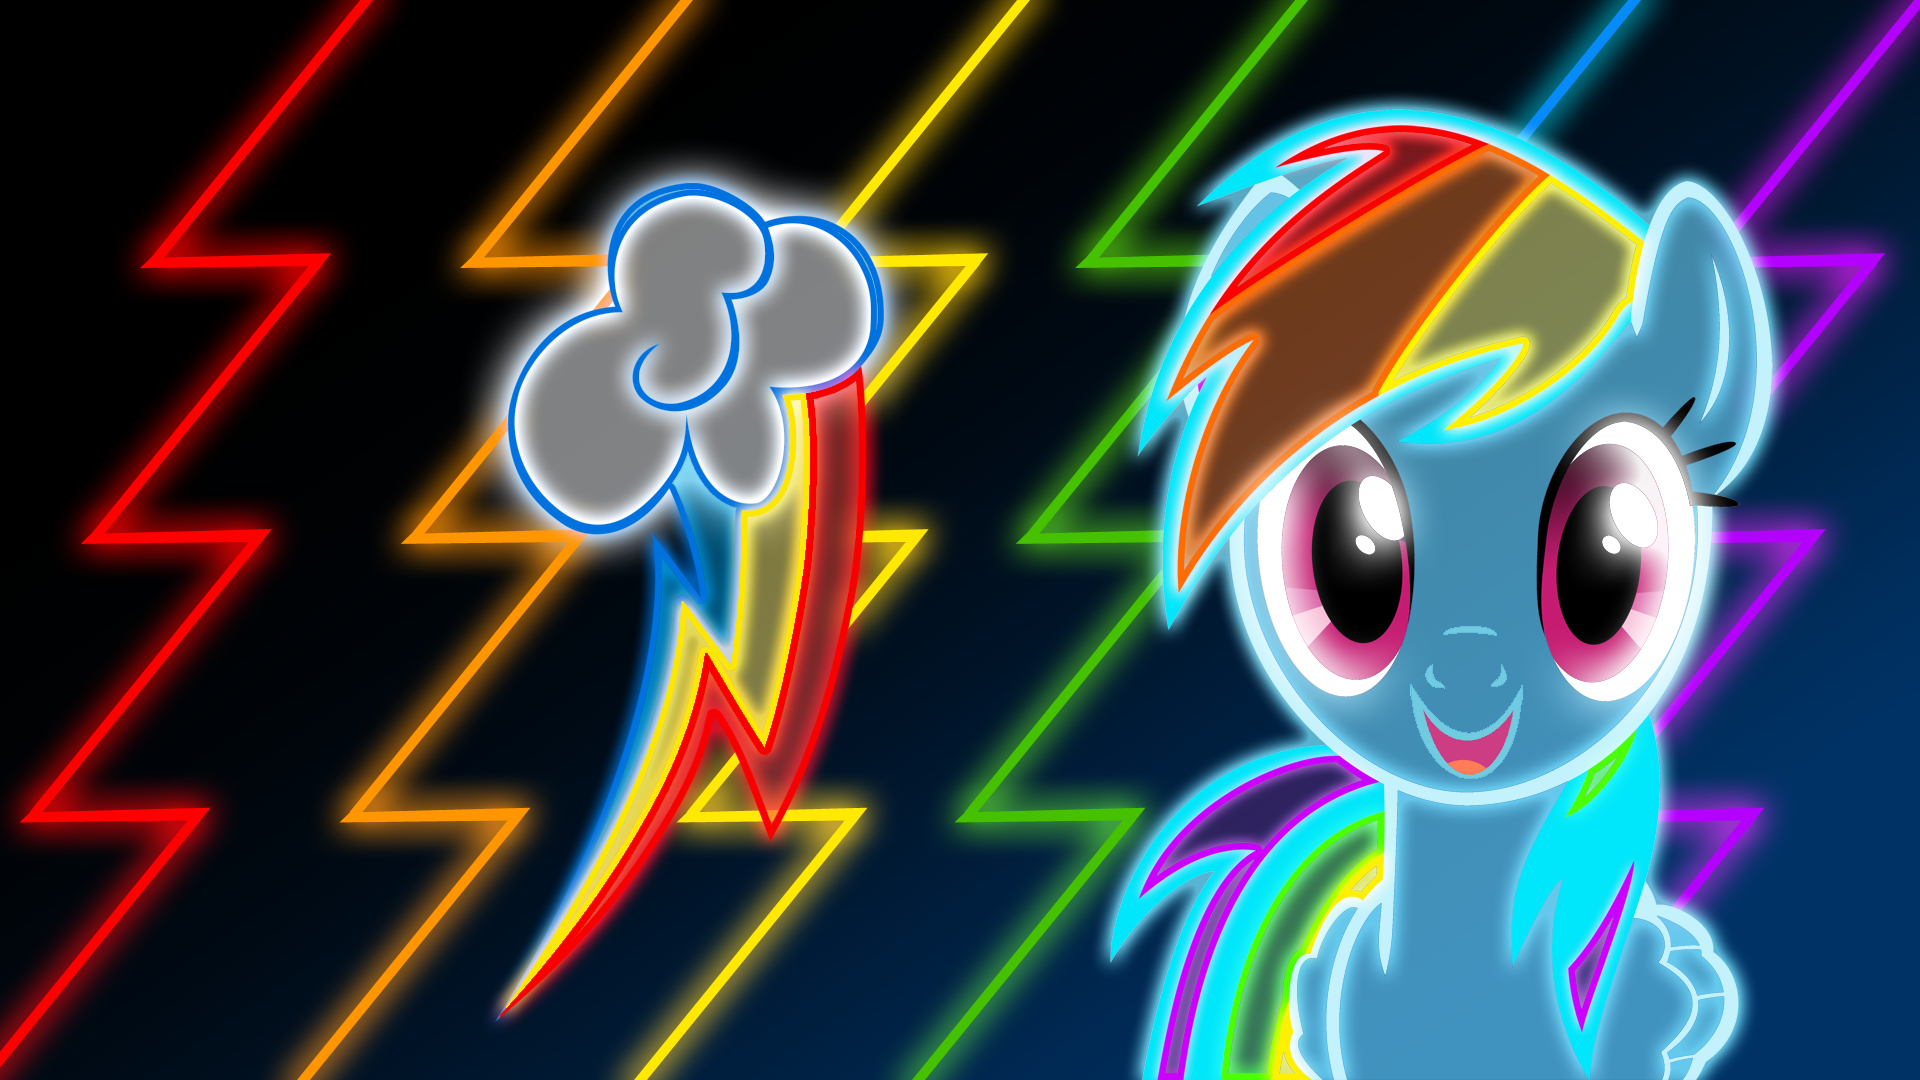 Neon Rainbow Dash Wallpaper By Ultimateultimate My Little Pony